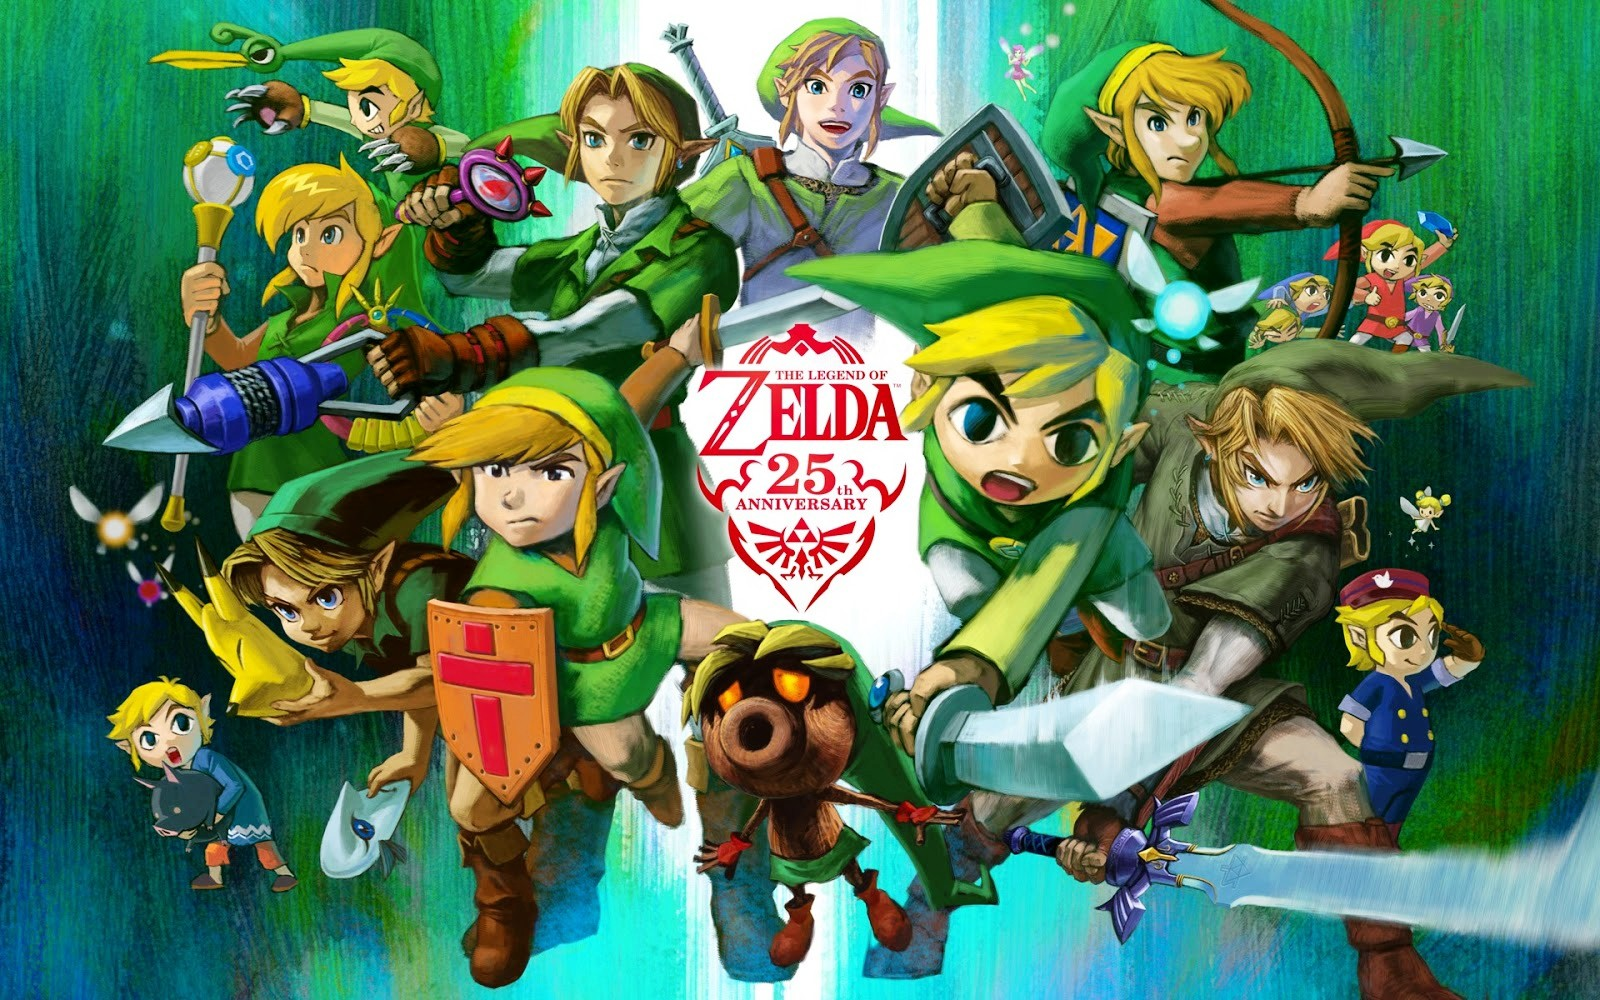 A collection of similarly dressed masc looking people holding swords and arrows. Text reads 'The Legend of Zelda 25th anniversary'.